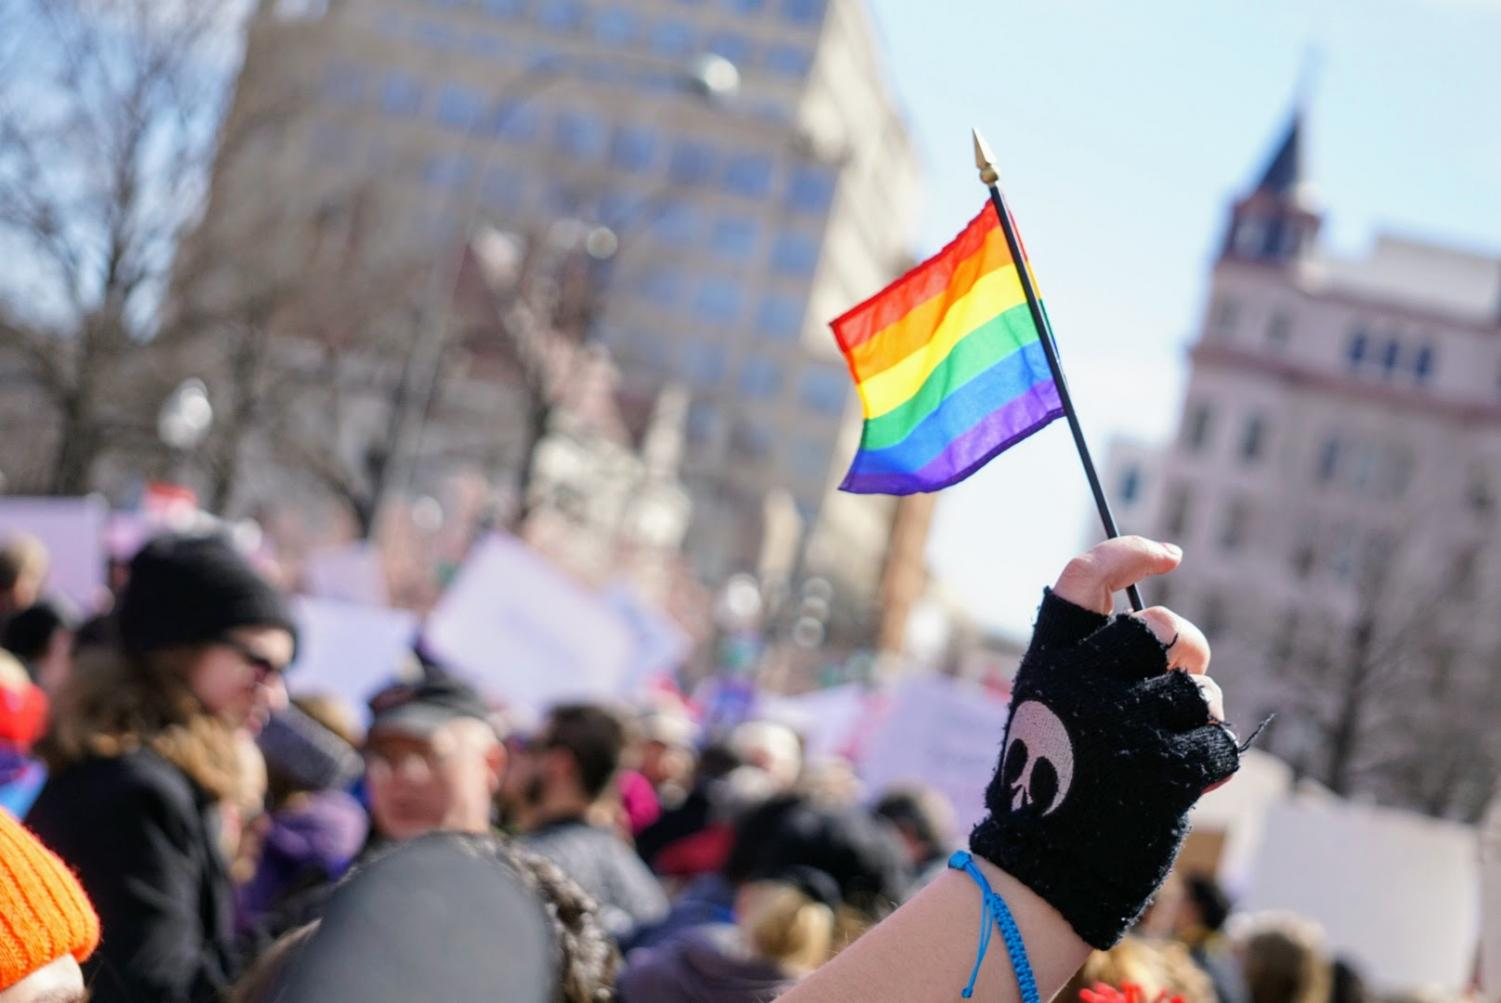 For the sake of justice, the morality of the LGBTQ+ cause must run alongside the constitutionality of its practice.